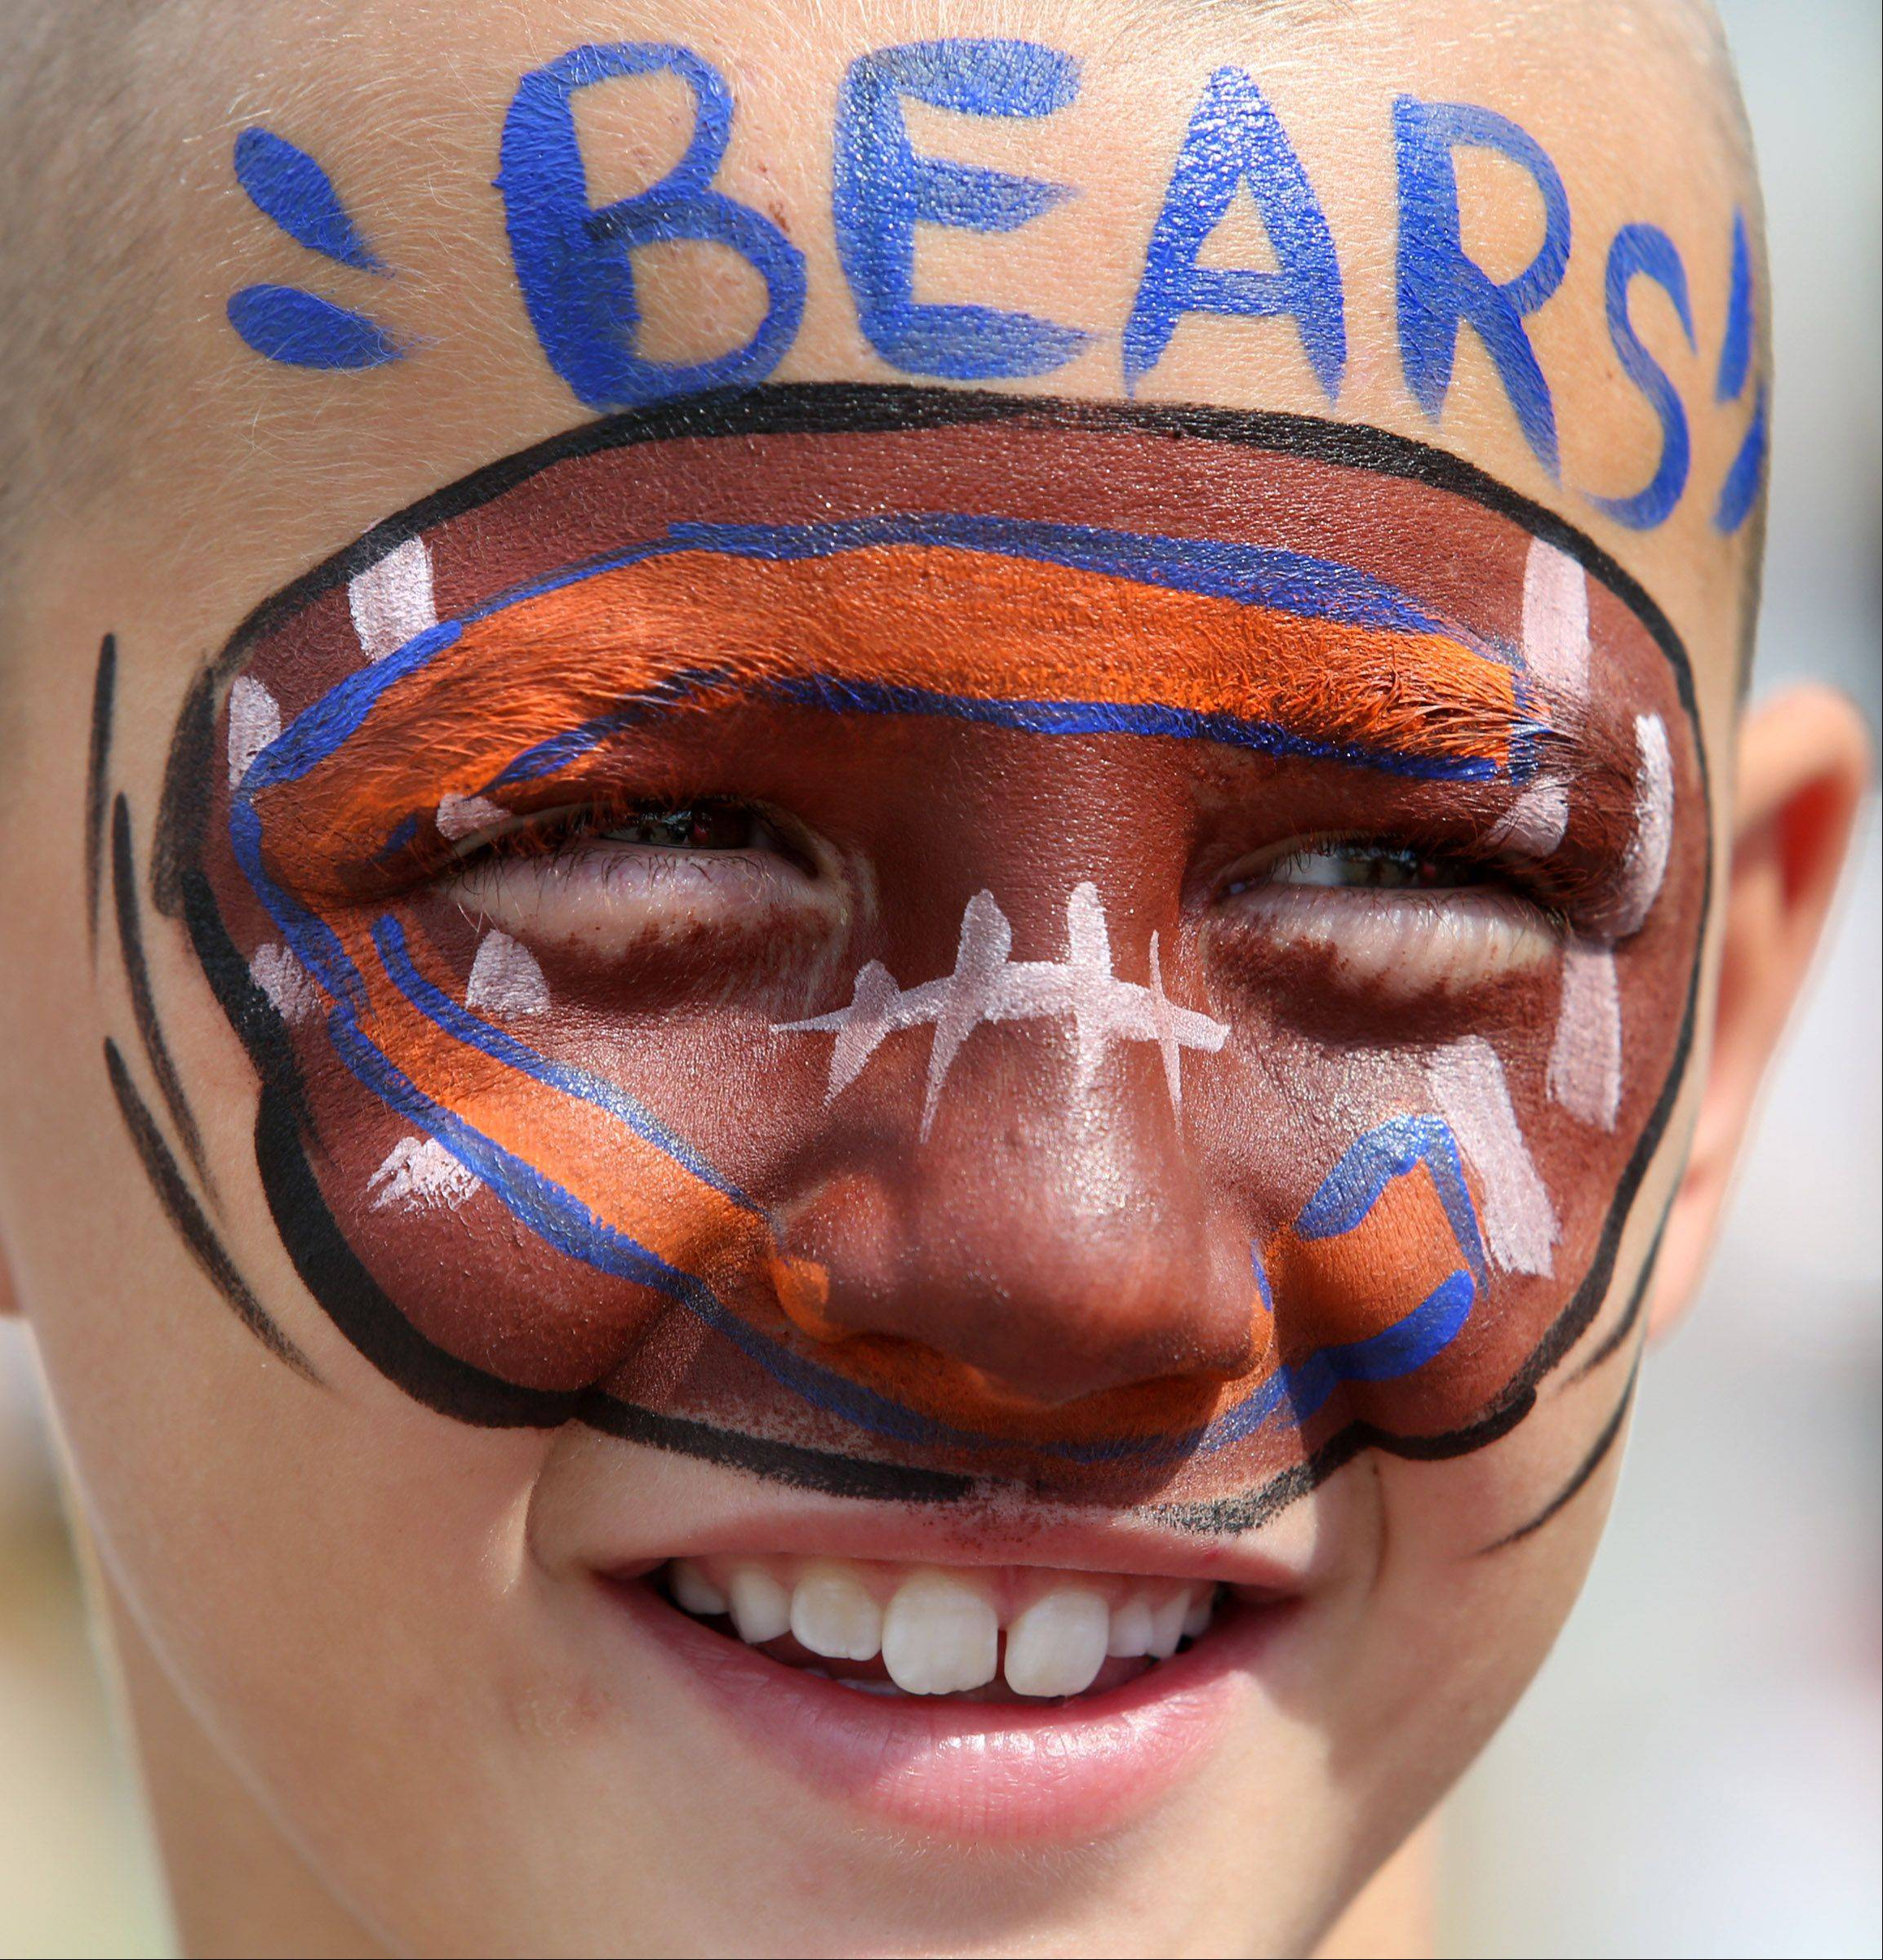 Zachary Kazumura, 9, may live in Wisconsin, but he gets his Chicago Bears game face on at a face painting booth at Antioch's Fall Arts and Crafts Fair on Main Street in Antioch Saturday. Zachary dad, Jeff Kazumura, works in Lake County.